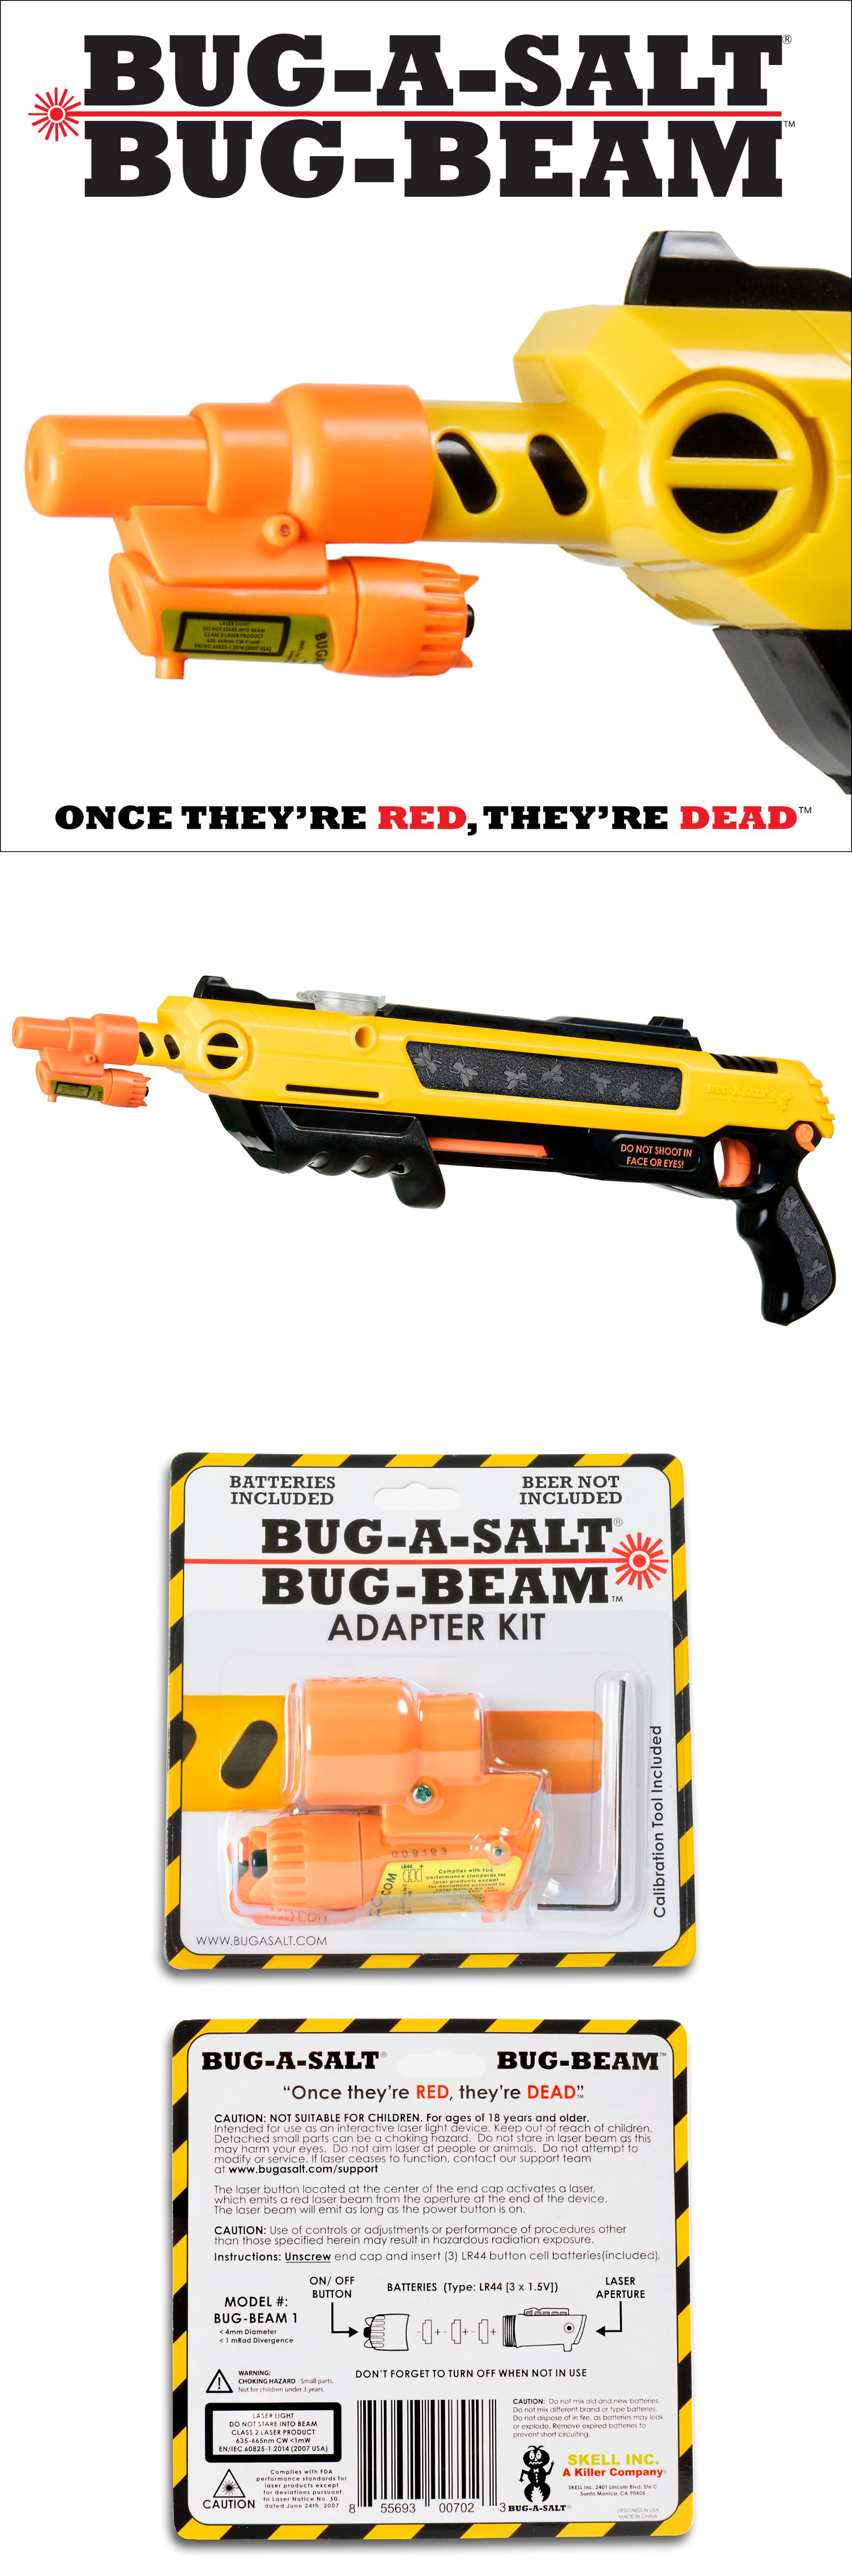 Details about Authentic BUGASALT BUGBEAM LASER ADAPTER